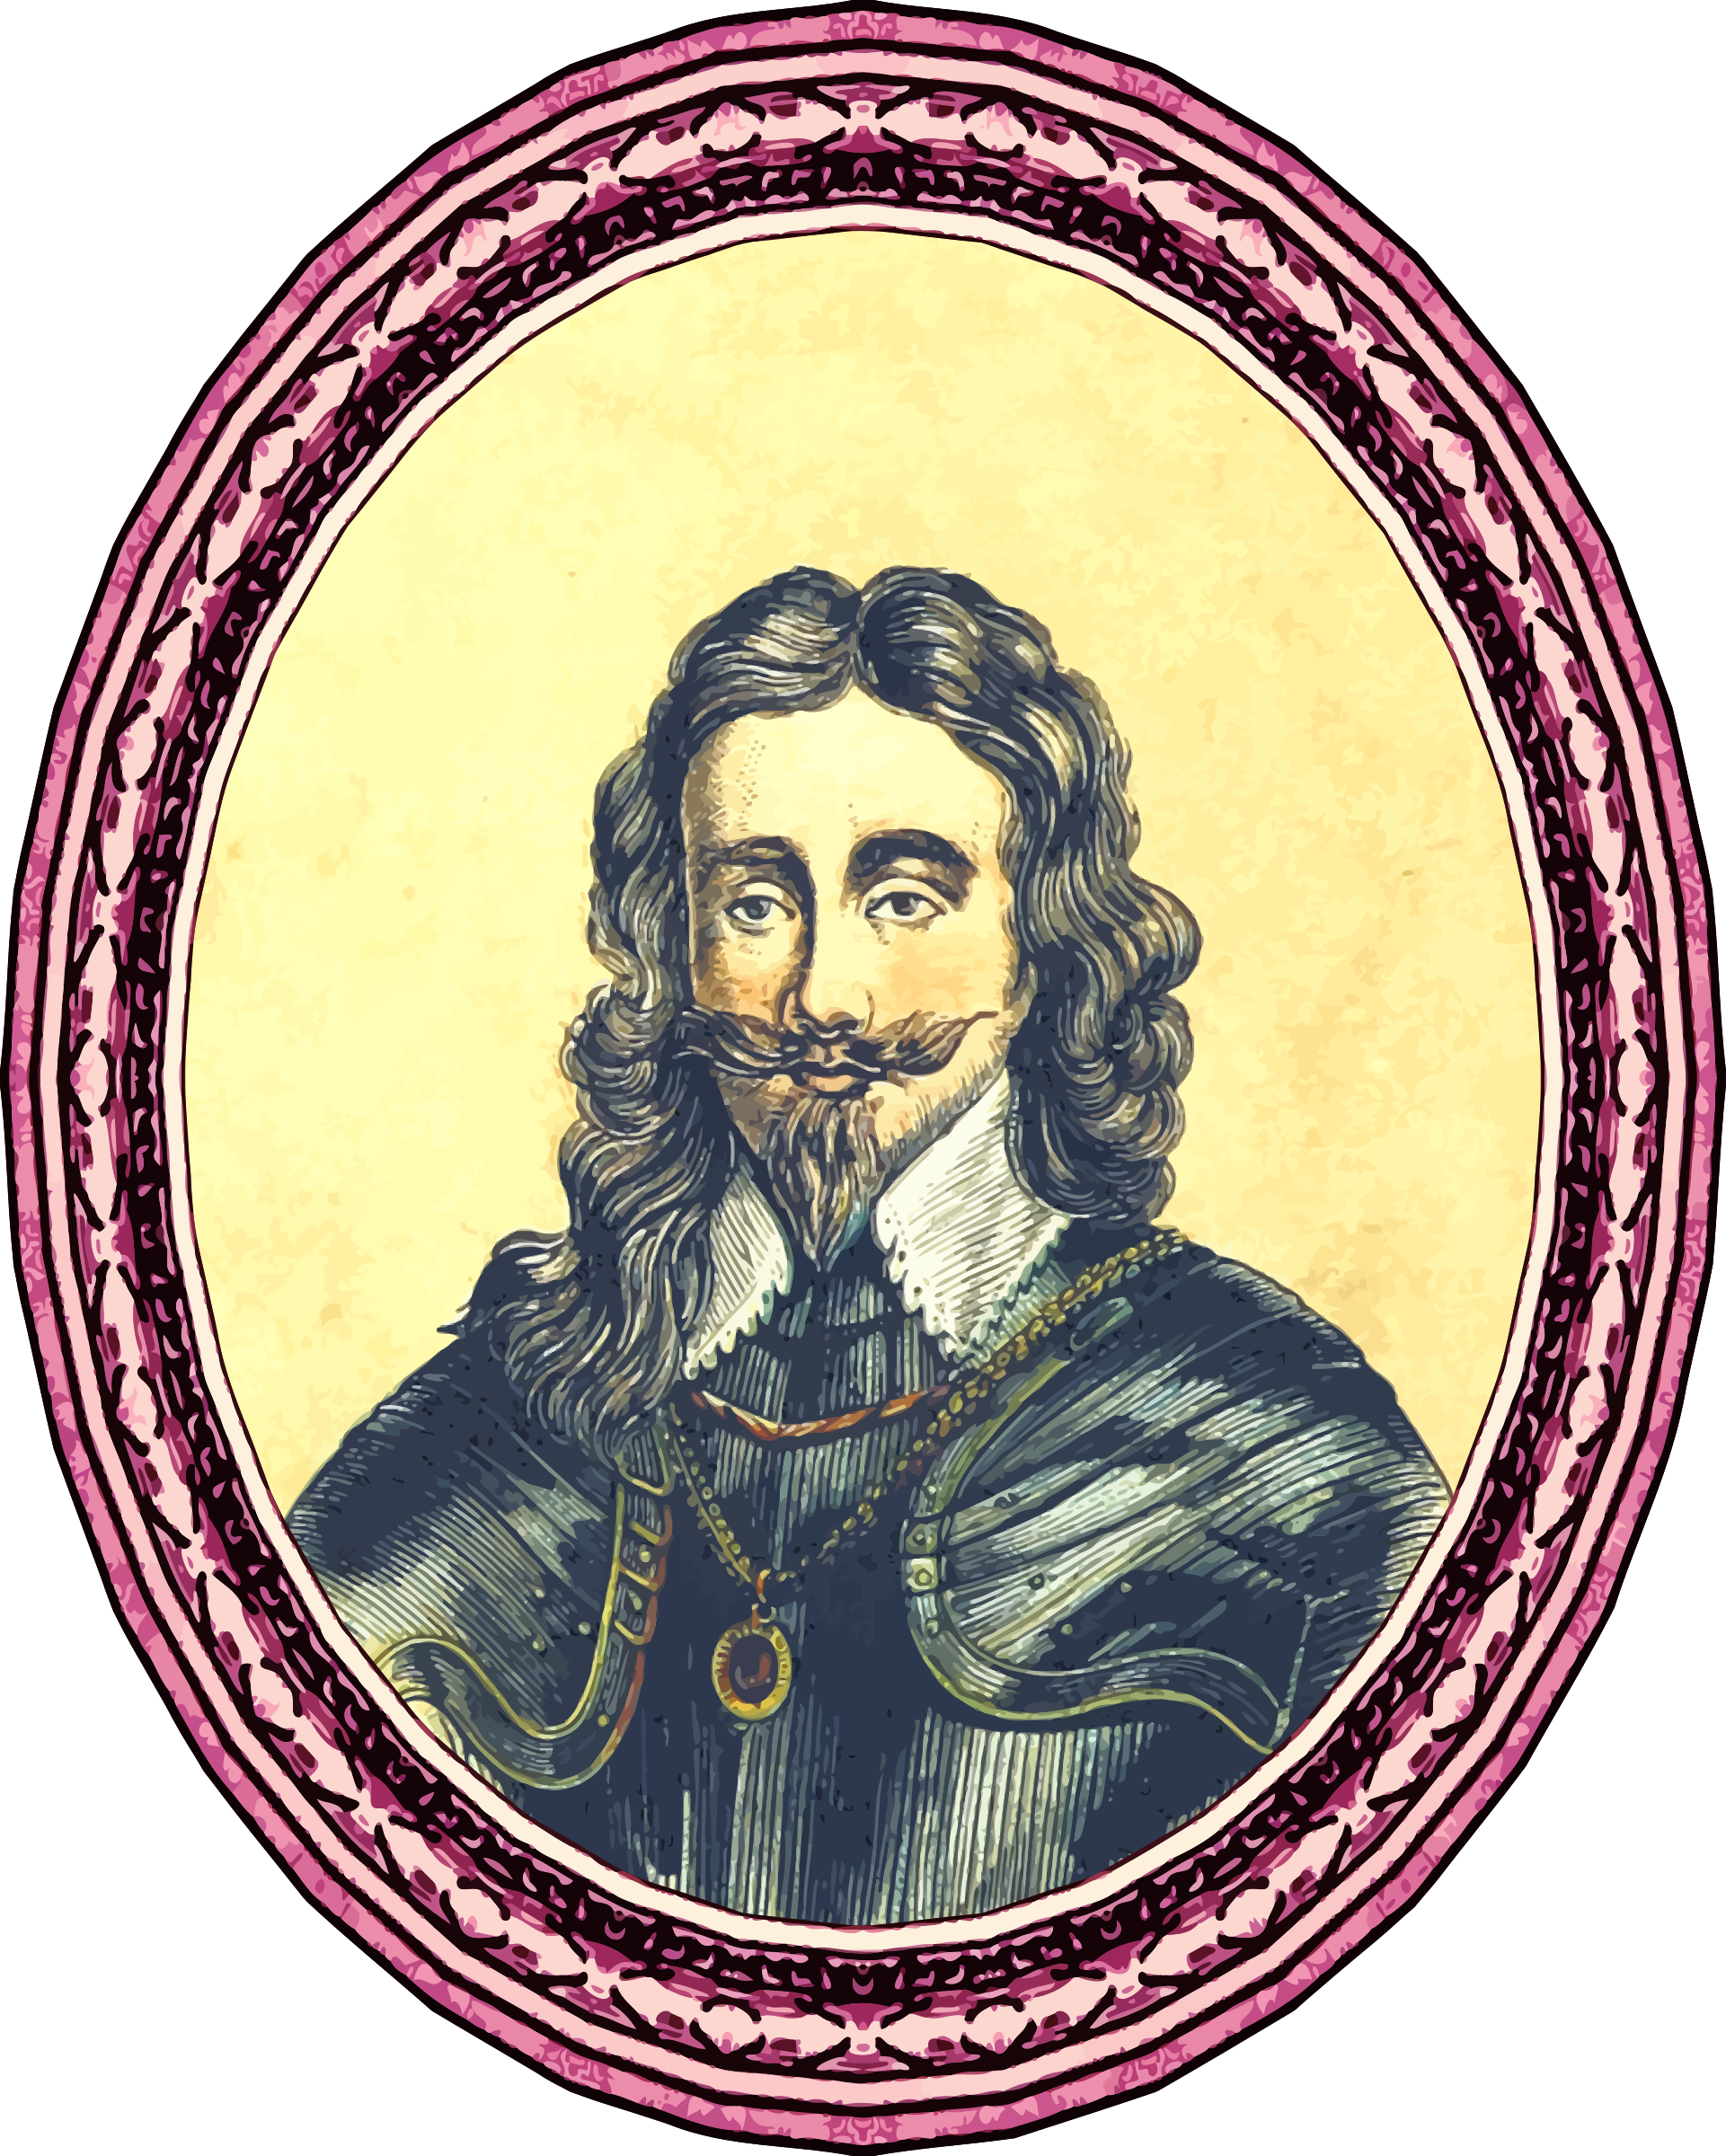 King Charles I (framed) by Firkin